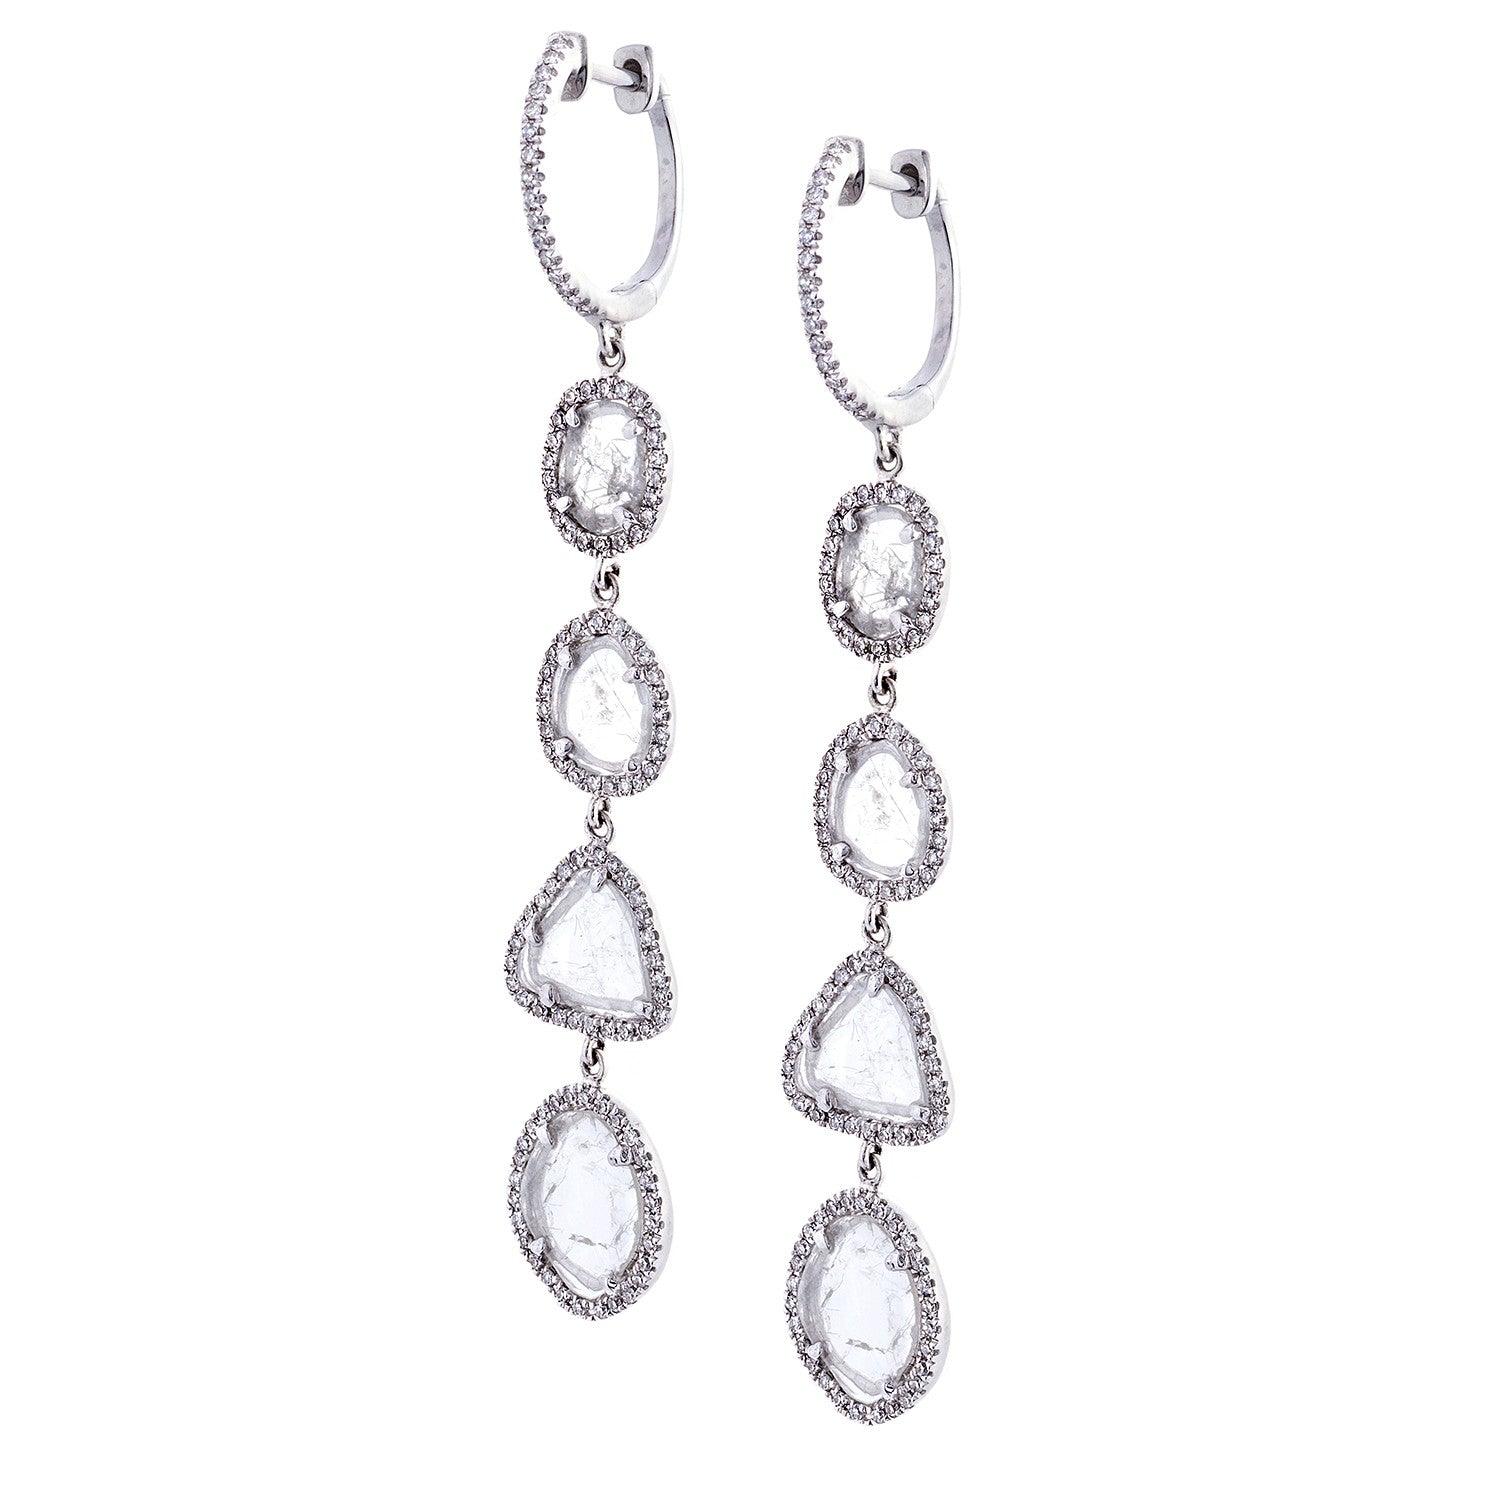 Diamonds & 14K White Gold Dangle Earrings